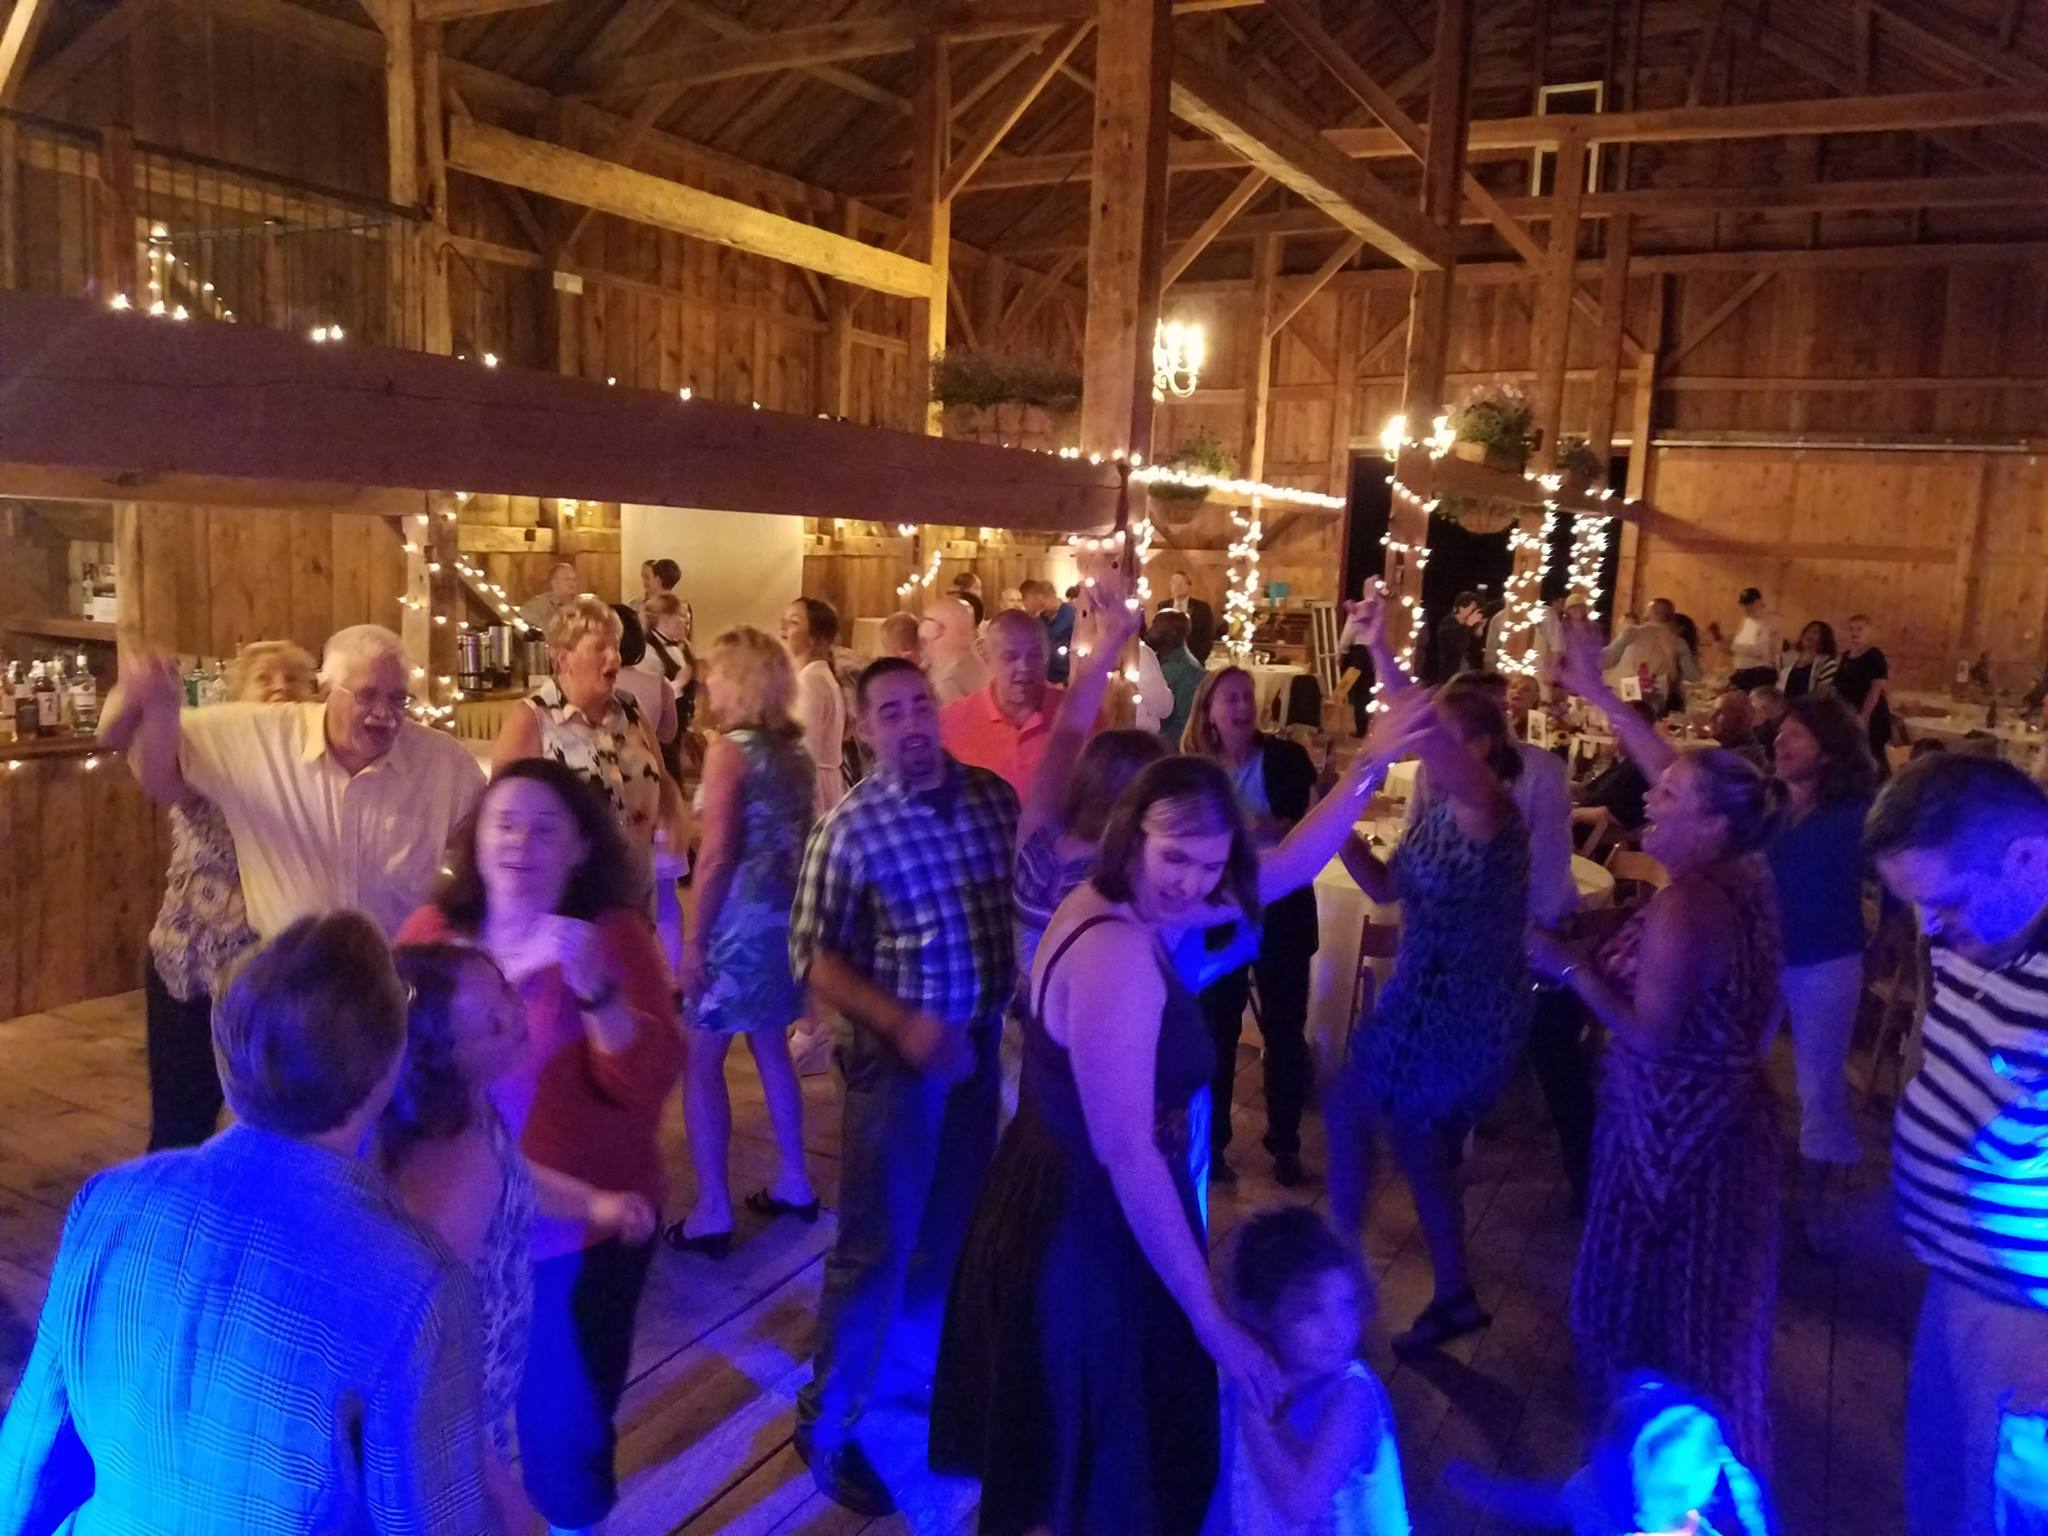 Matt And Lous Wedding Reception At William Allen Farm In Pownal Maine Band Every